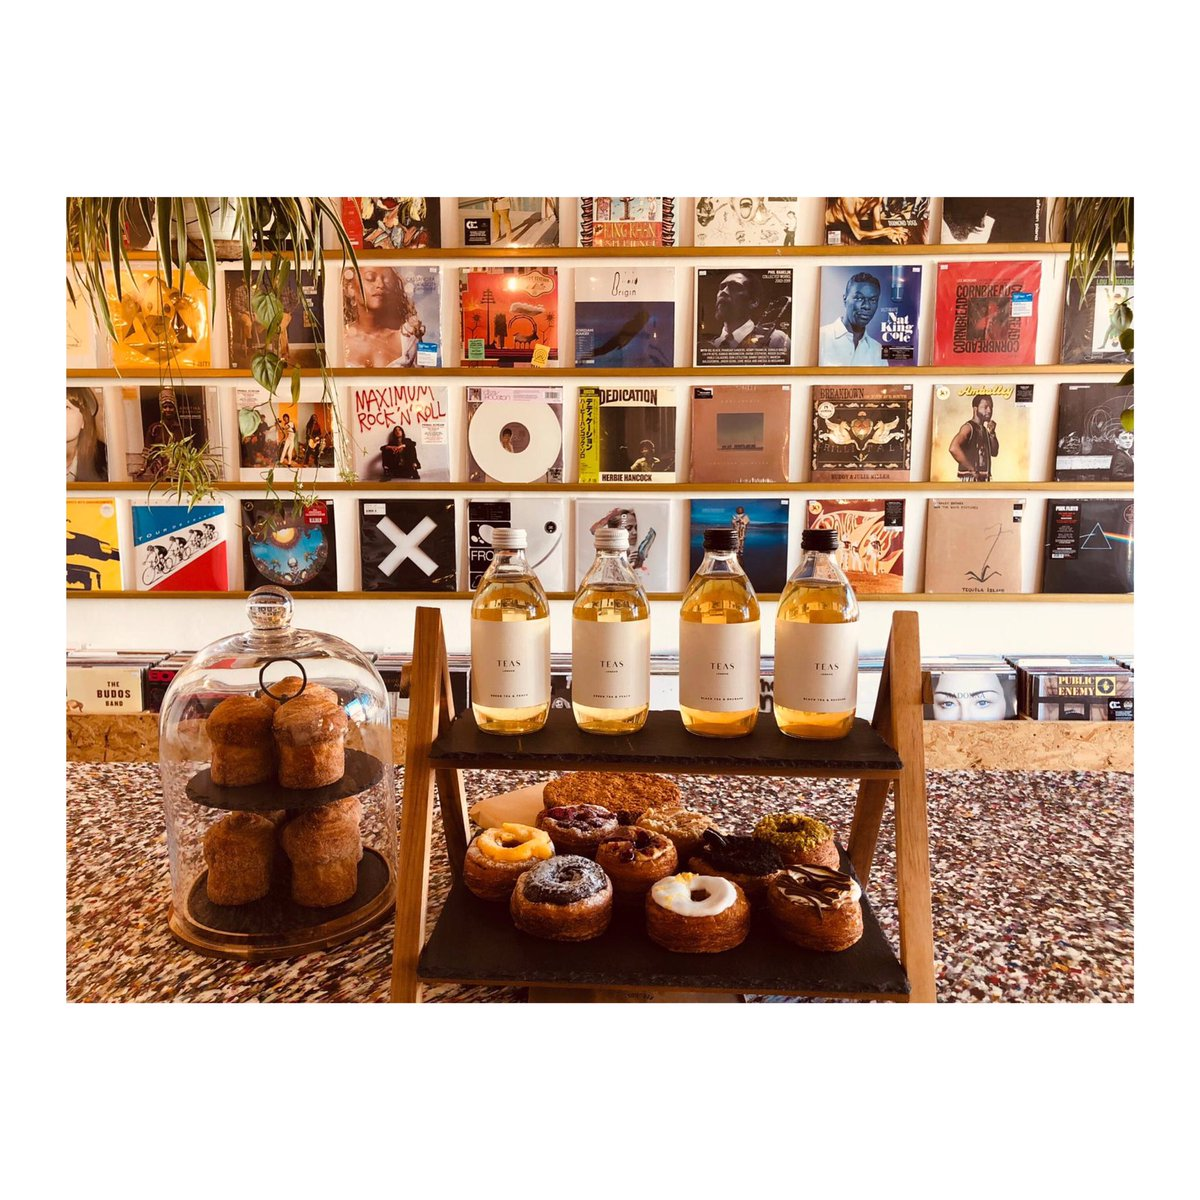 Summer in the City ☀️  Open today and tomorrow then closed for a week 🇮🇹  #summerinthecity #coffeeshop #caffeine #specialtycoffee #summer #london #timeoutlondon #hot #cruffin #cronut #crodough #tea #icedtea #vinyl #vinylwall #colourful #eastsheen #mortlake #southwestlondon